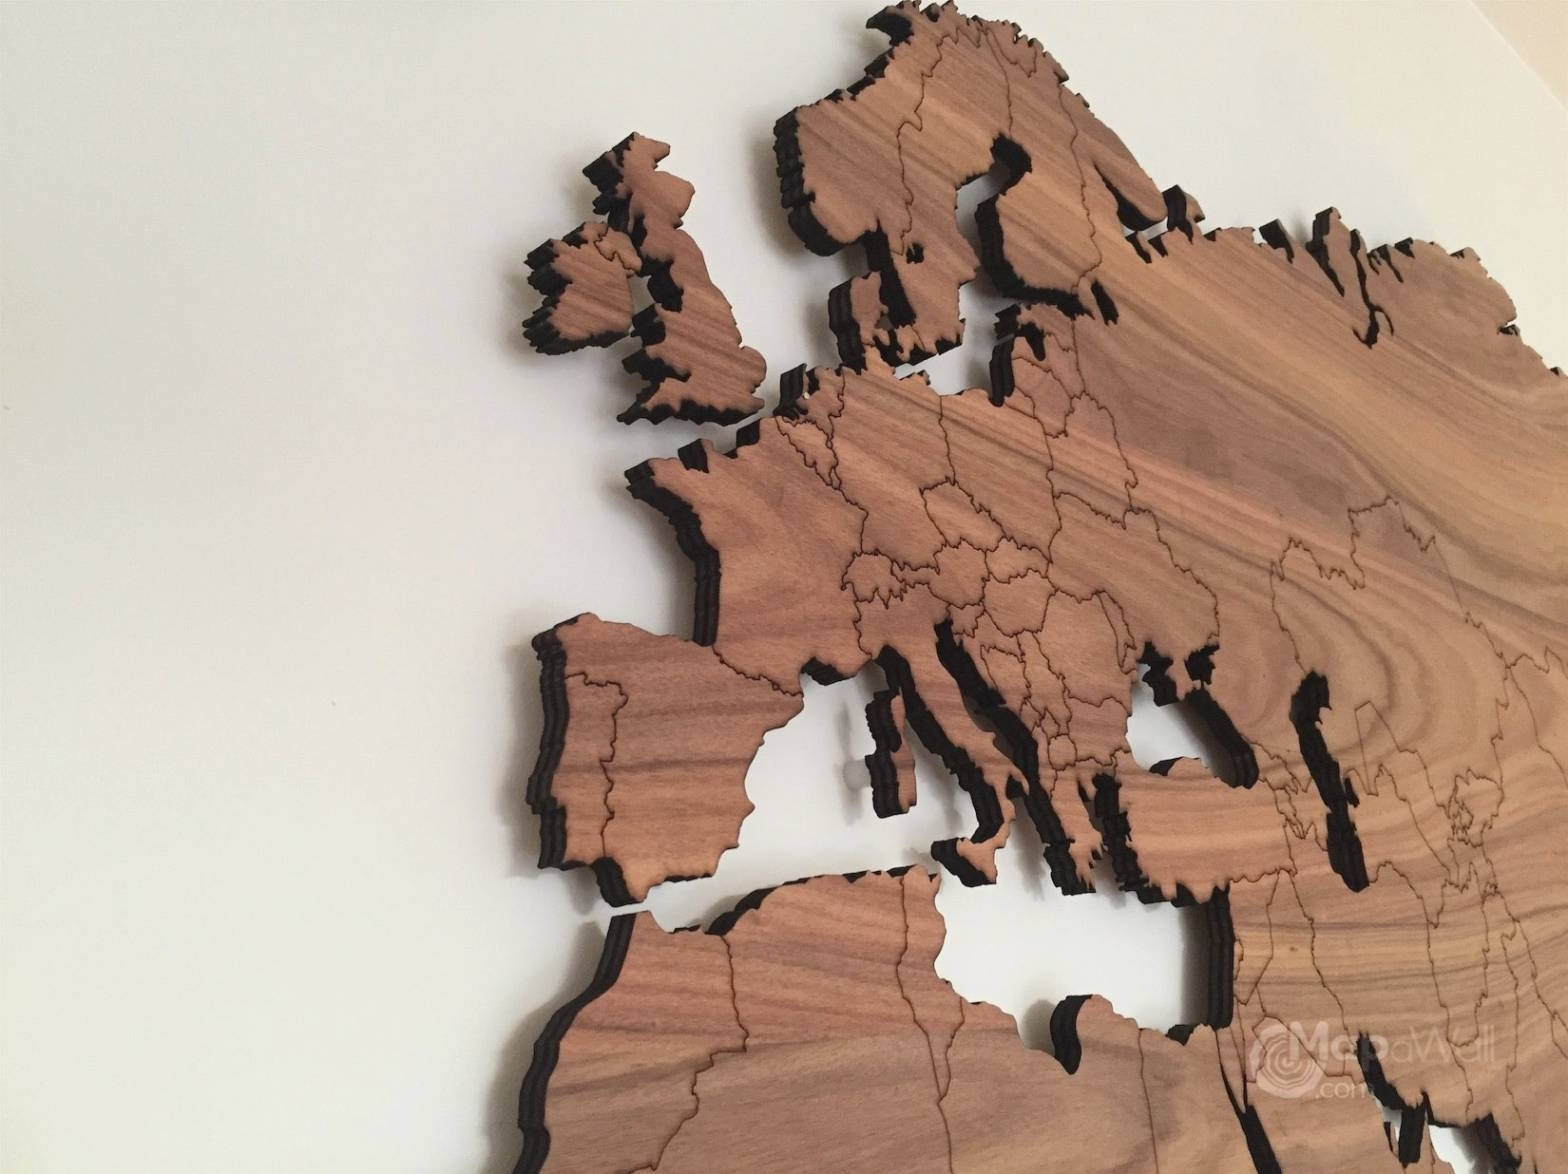 20 Ideas Of Map World Wall Art And Wooden – Furlongs With Most Recently Released Map Of The World Wall Art (View 17 of 20)